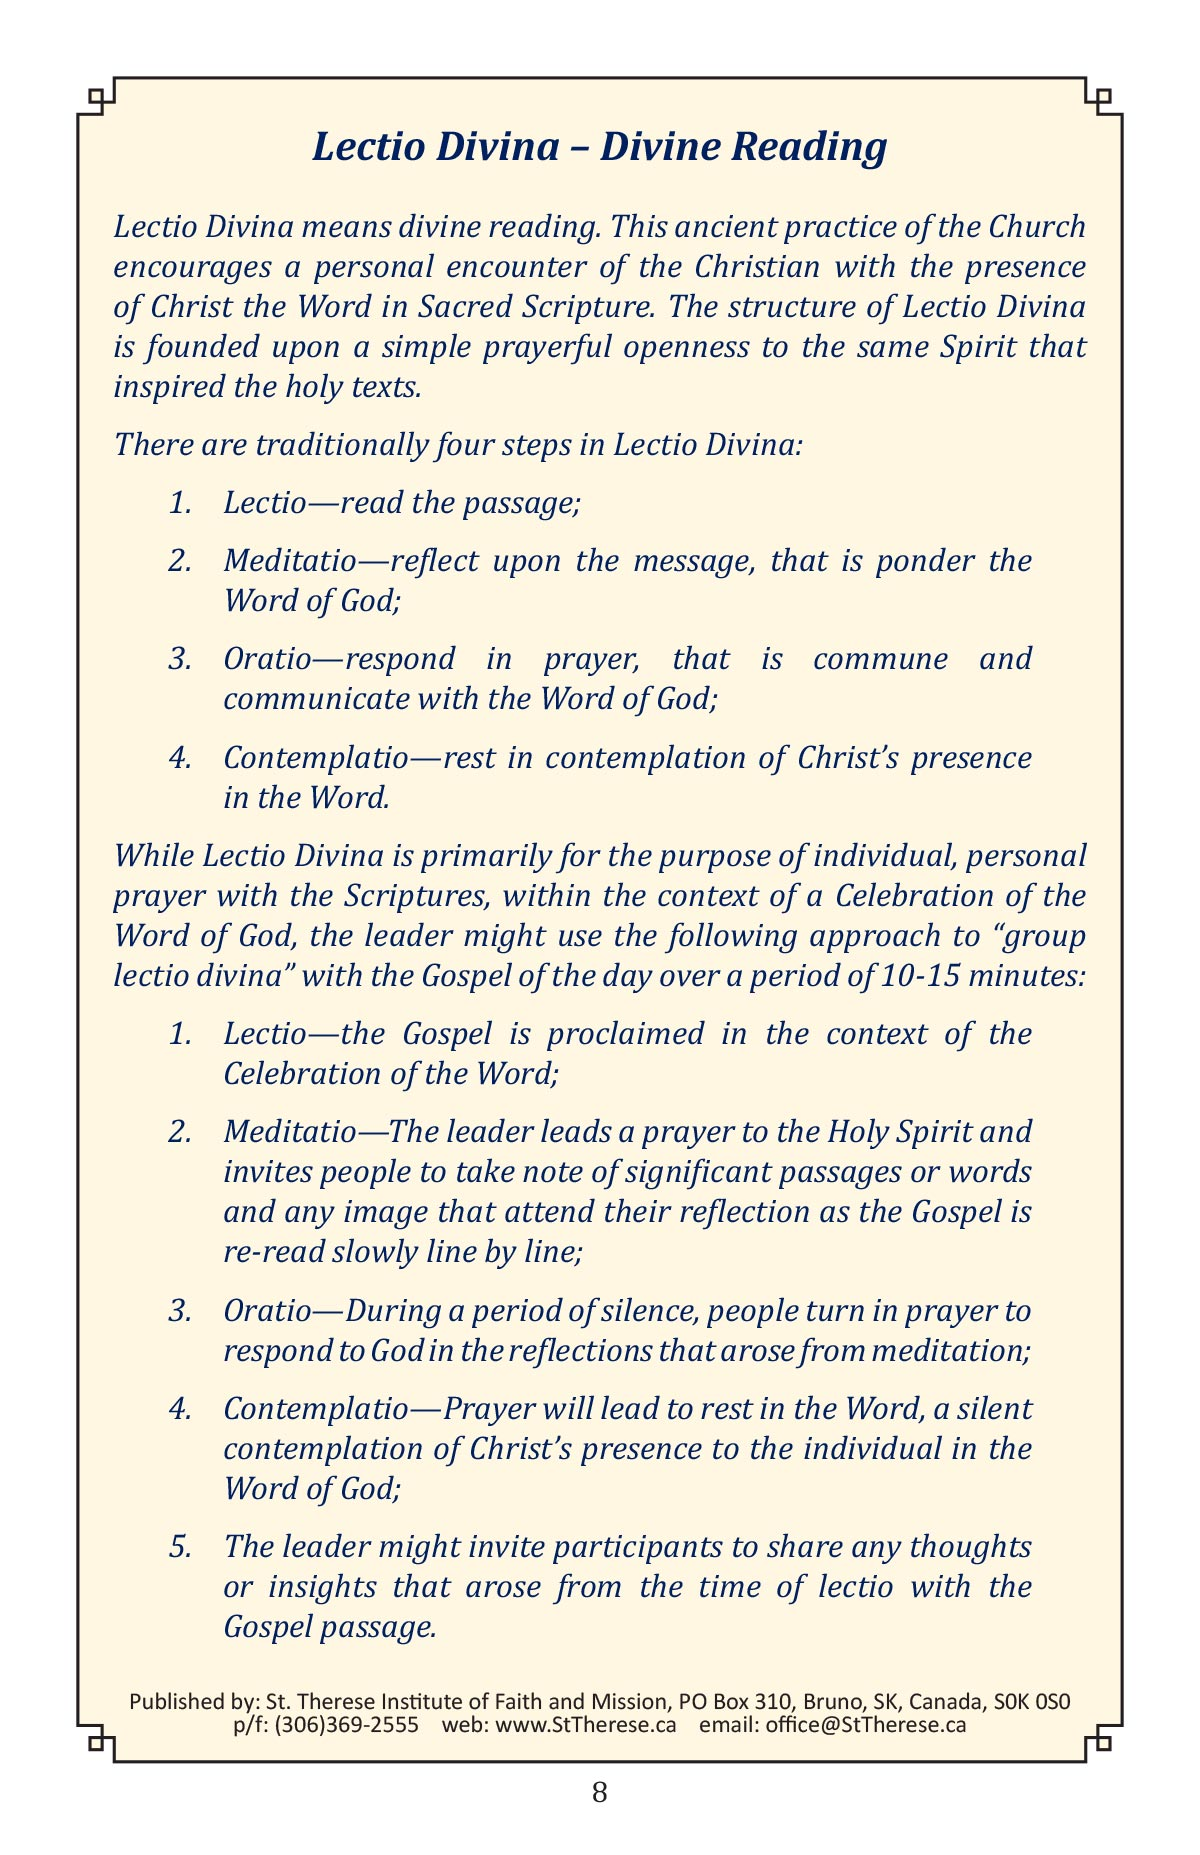 A Celebtation of the Word of God booklet page 10